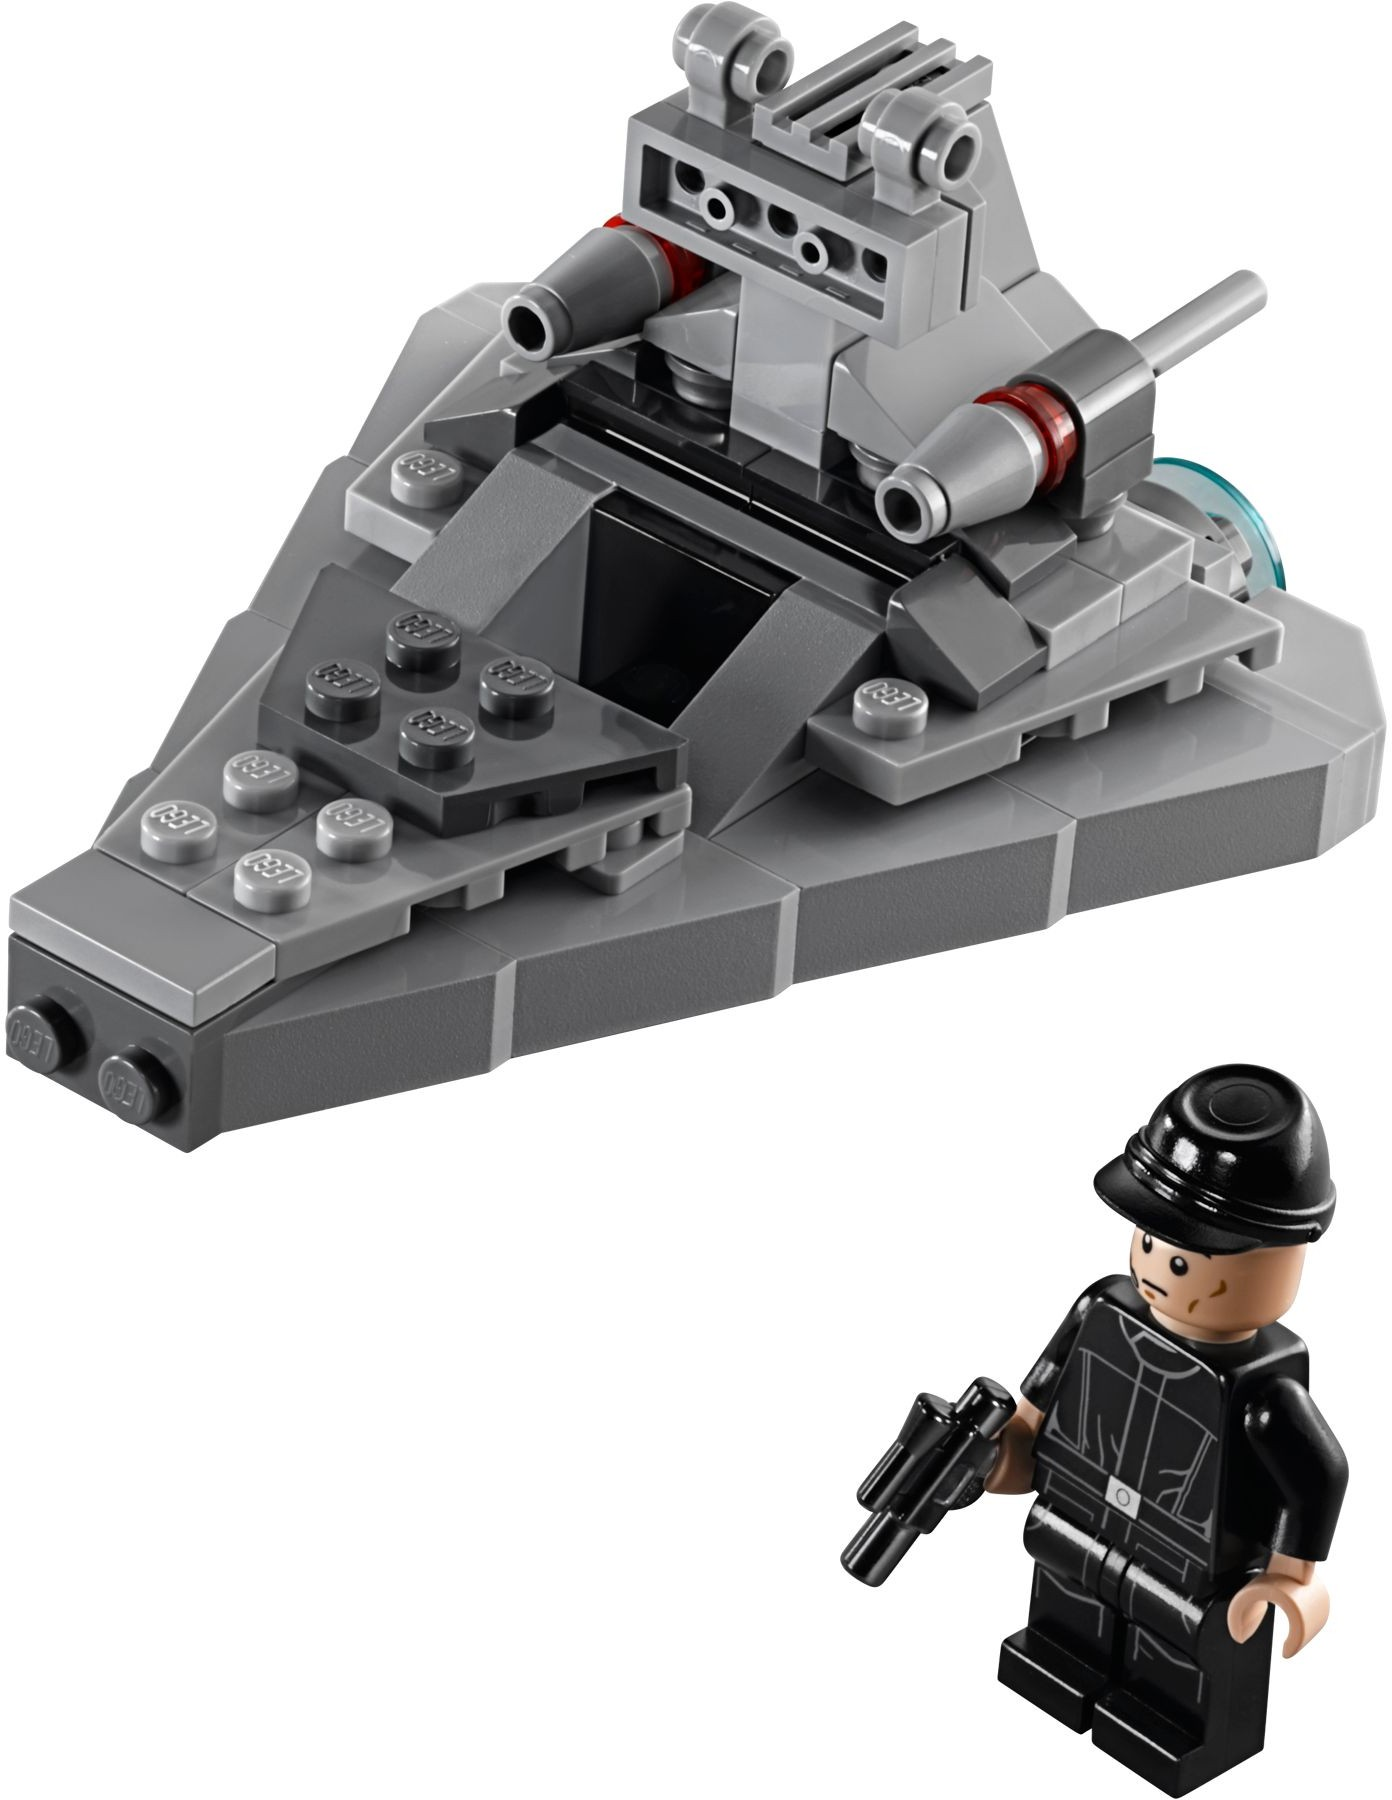 http://images.brickset.com/sets/AdditionalImages/75033-1/75033_main.jpg